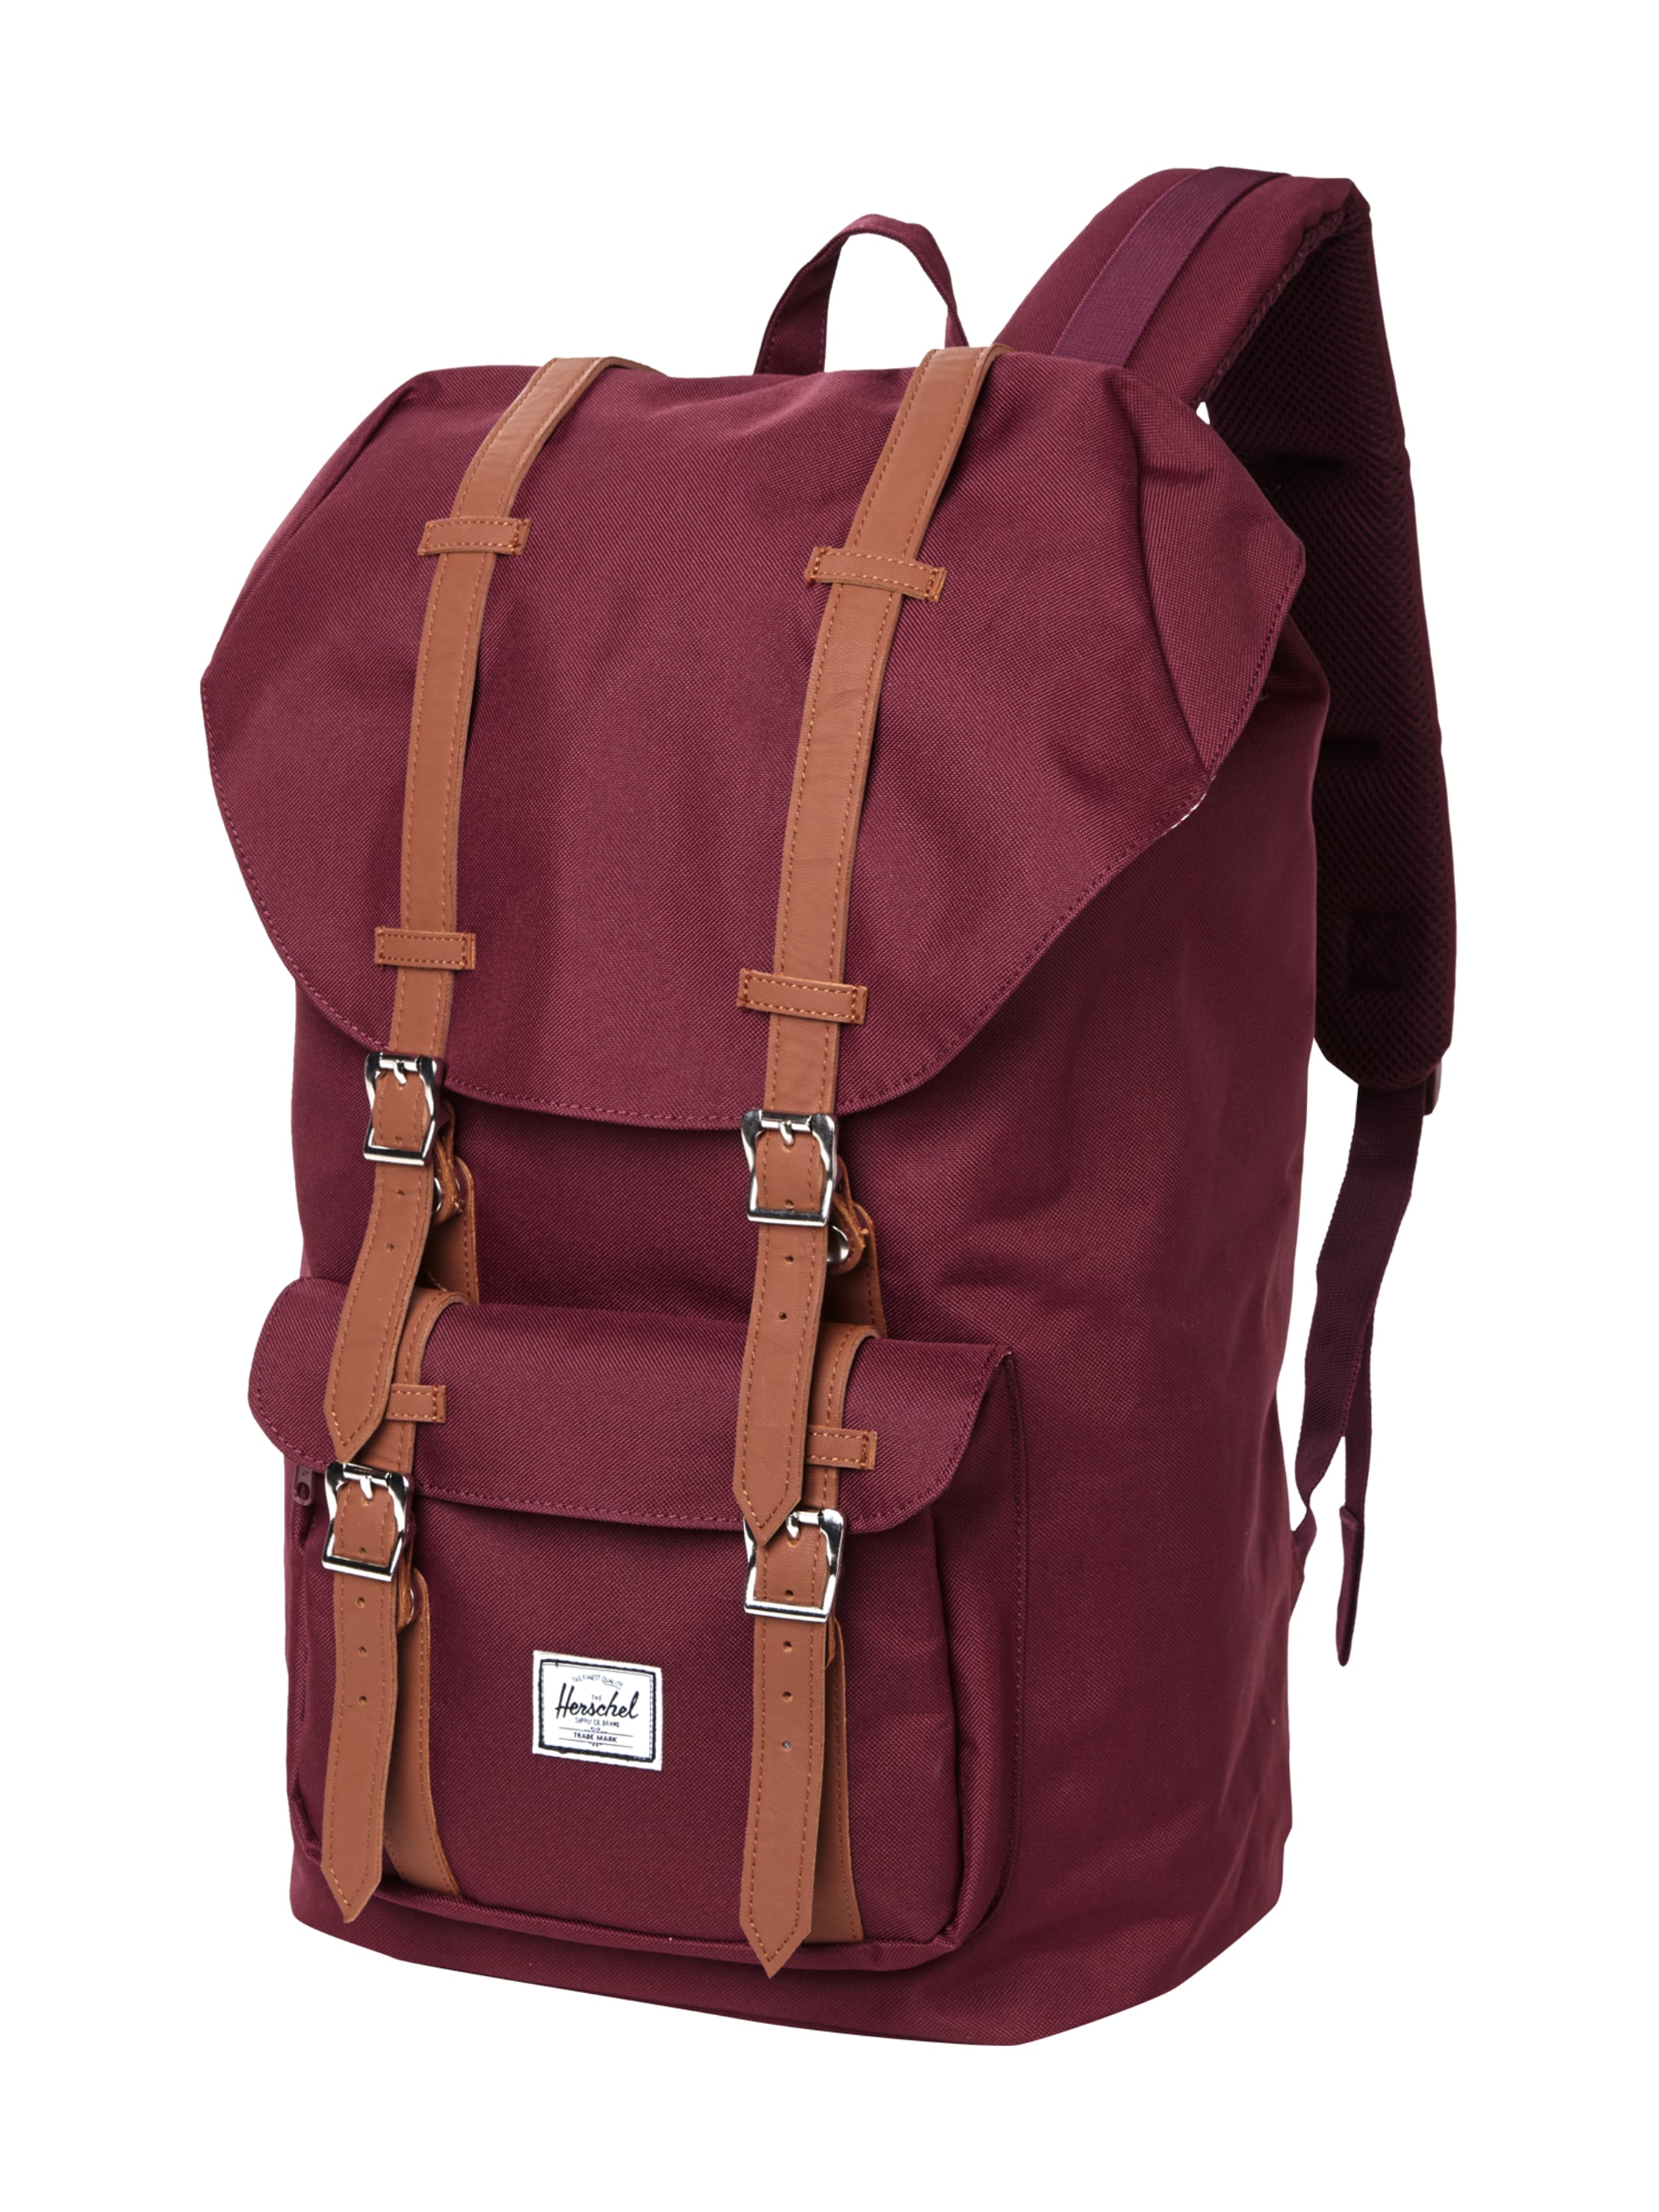 rucksack mit laptopfach fashion id online shop. Black Bedroom Furniture Sets. Home Design Ideas